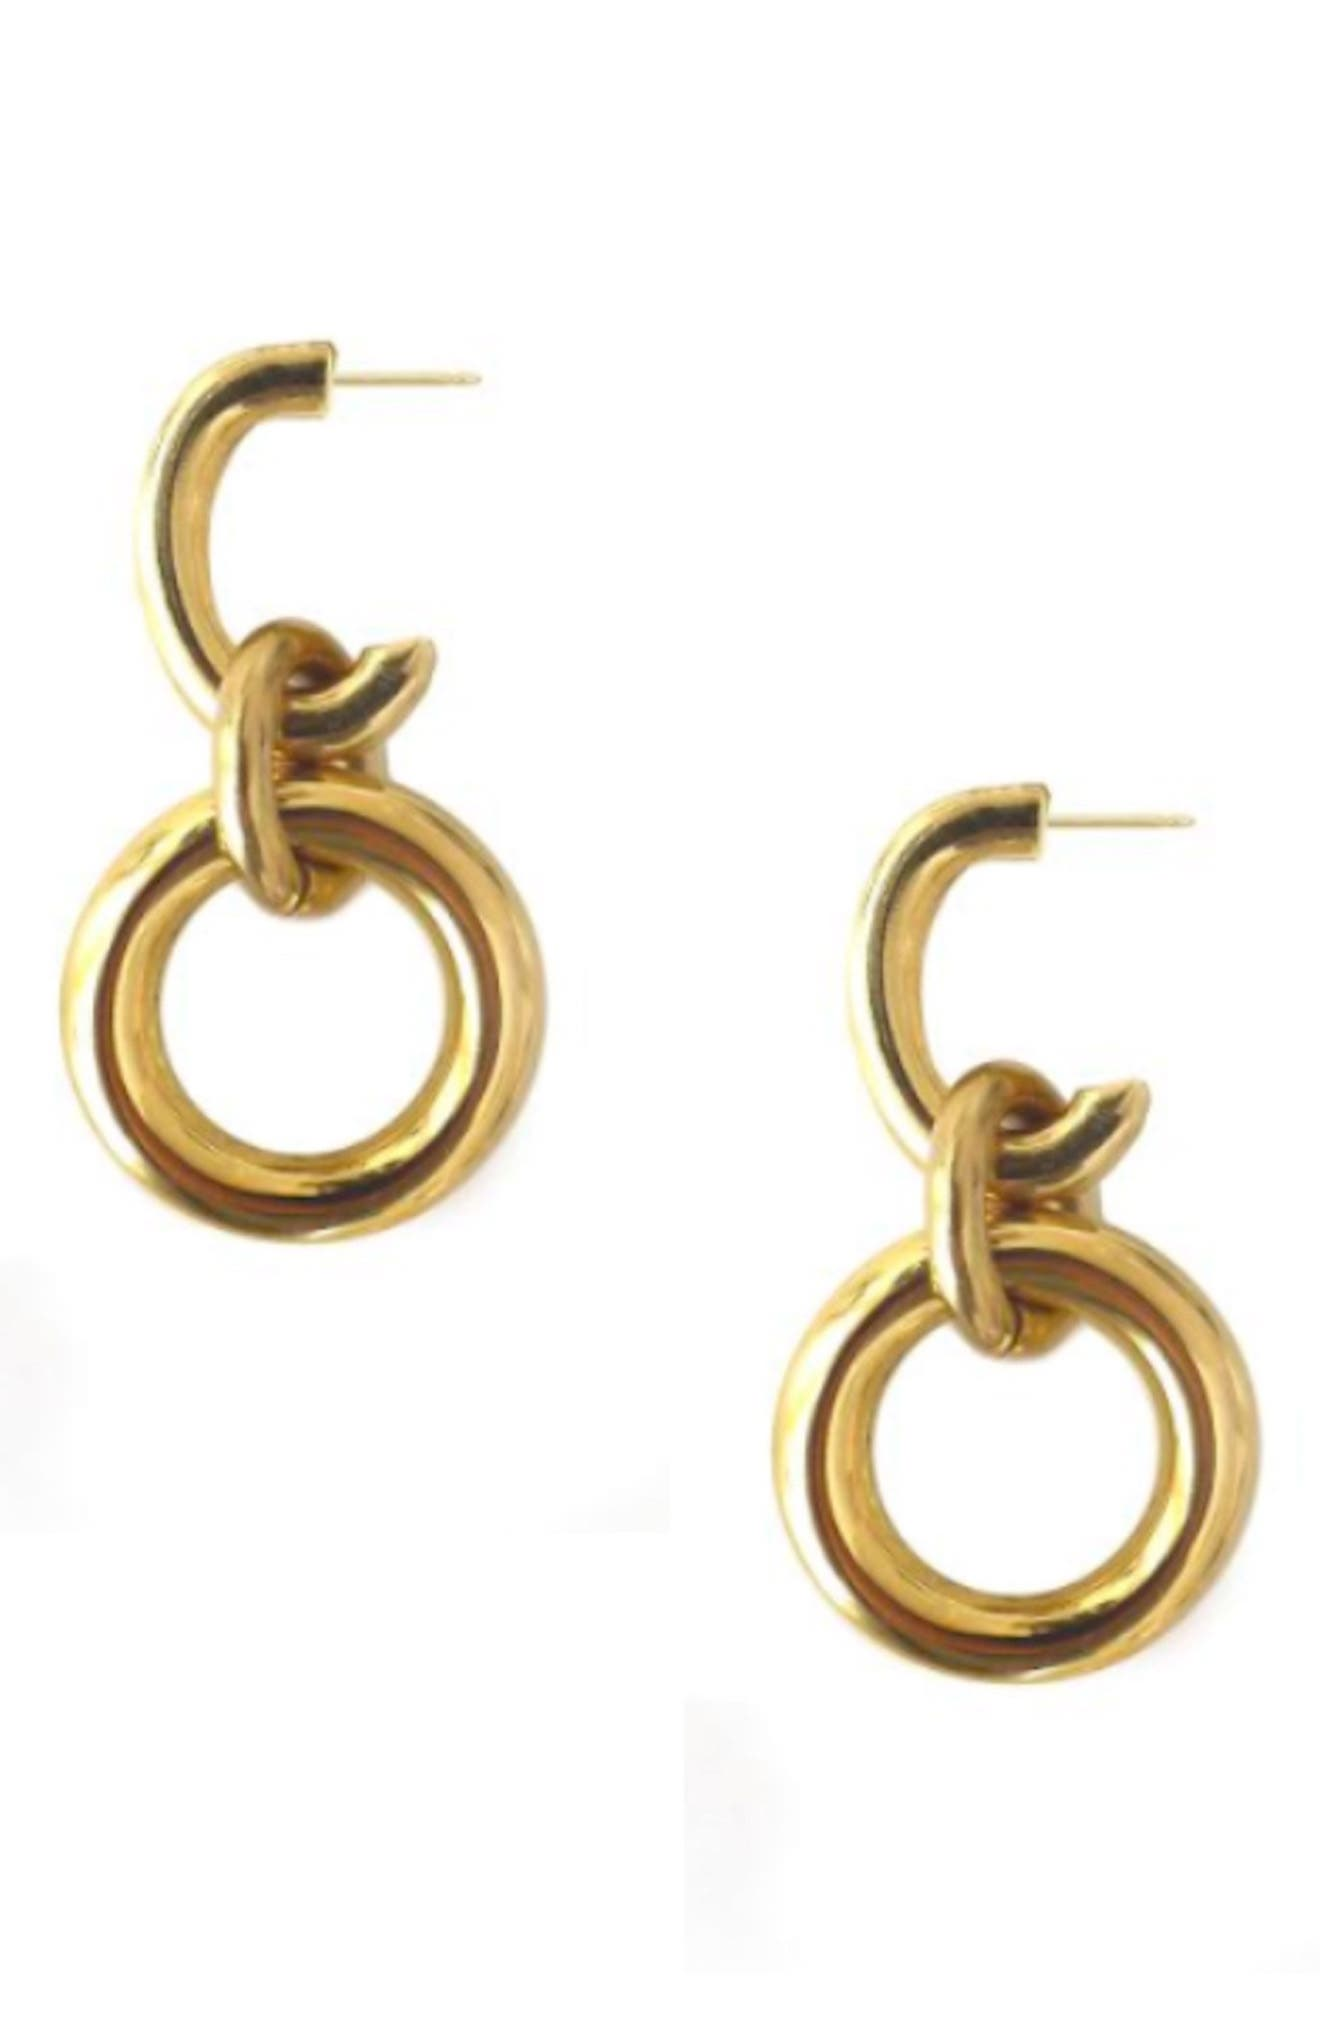 Tira Earrings,                             Main thumbnail 1, color,                             710